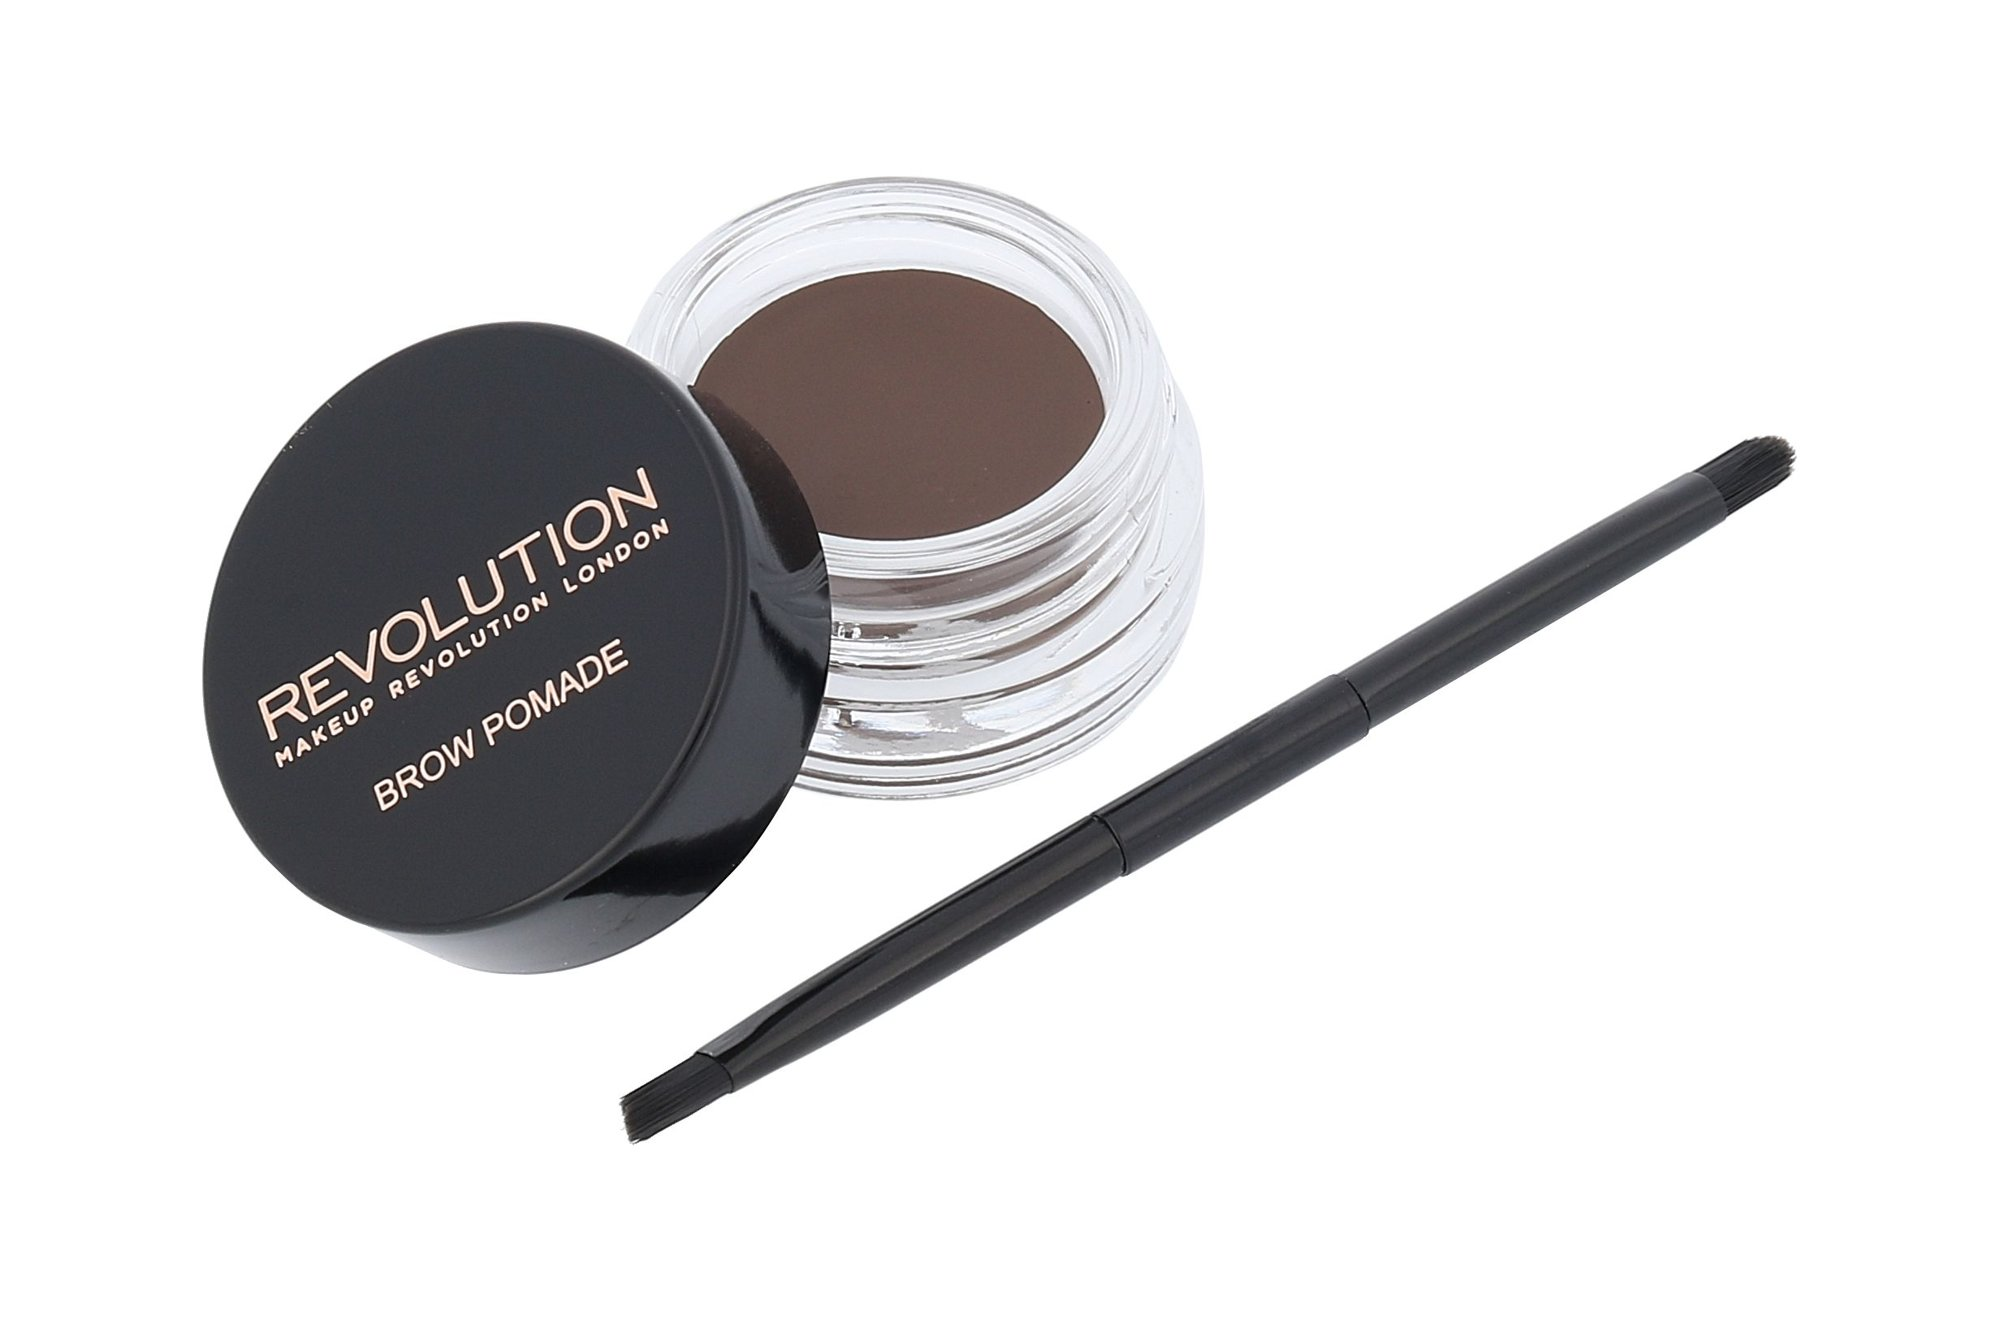 Makeup Revolution London Brow Pomade  (Gel a pomáda na obočí, W, 2,5 g)